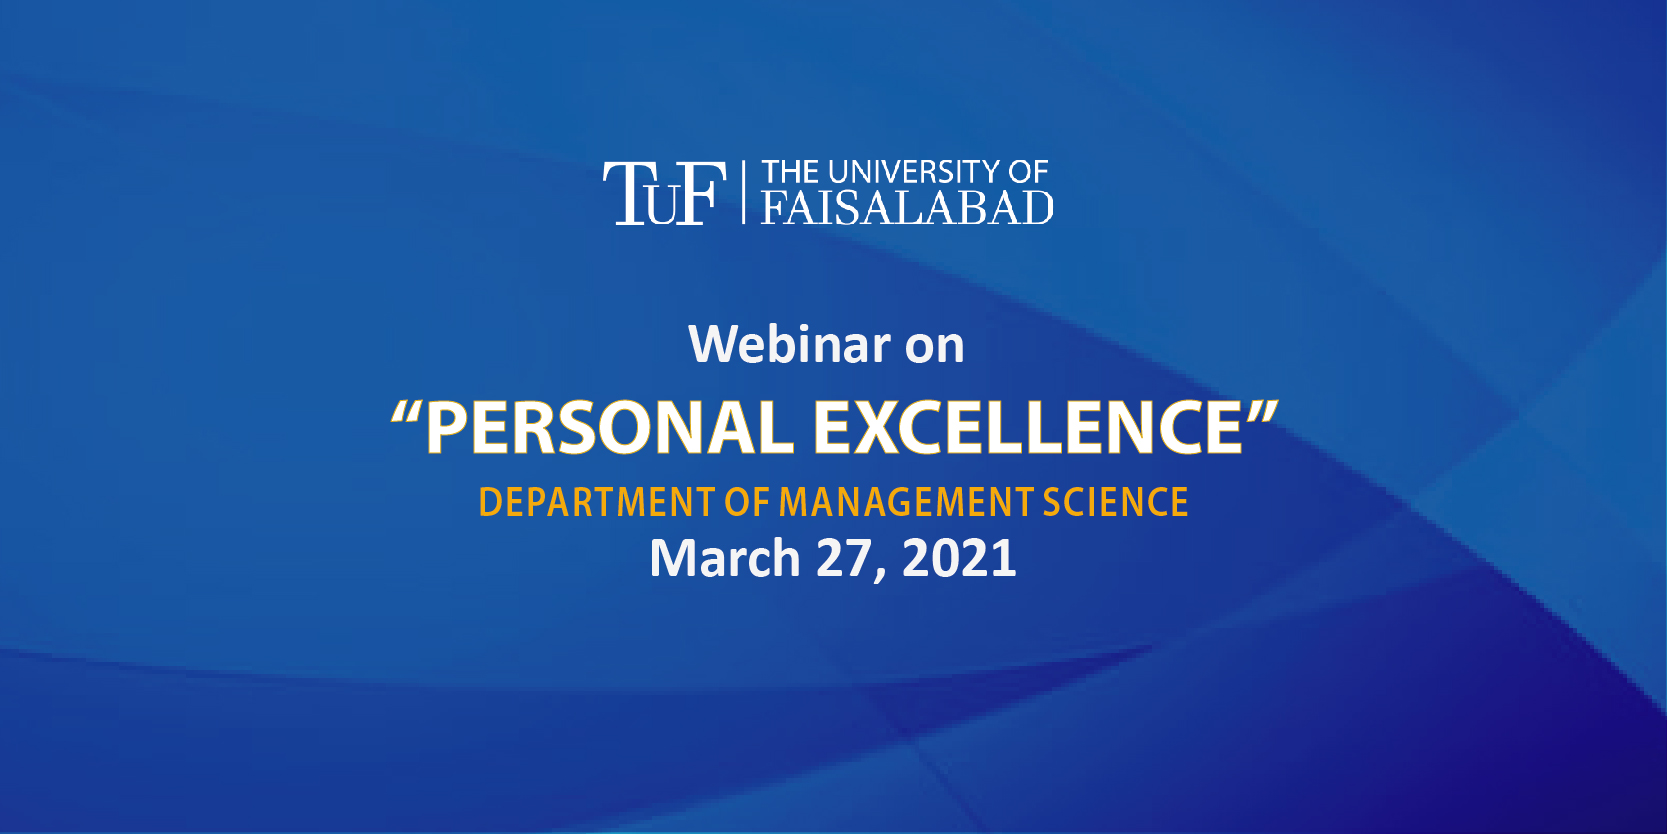 webinar-on-personal-excellence